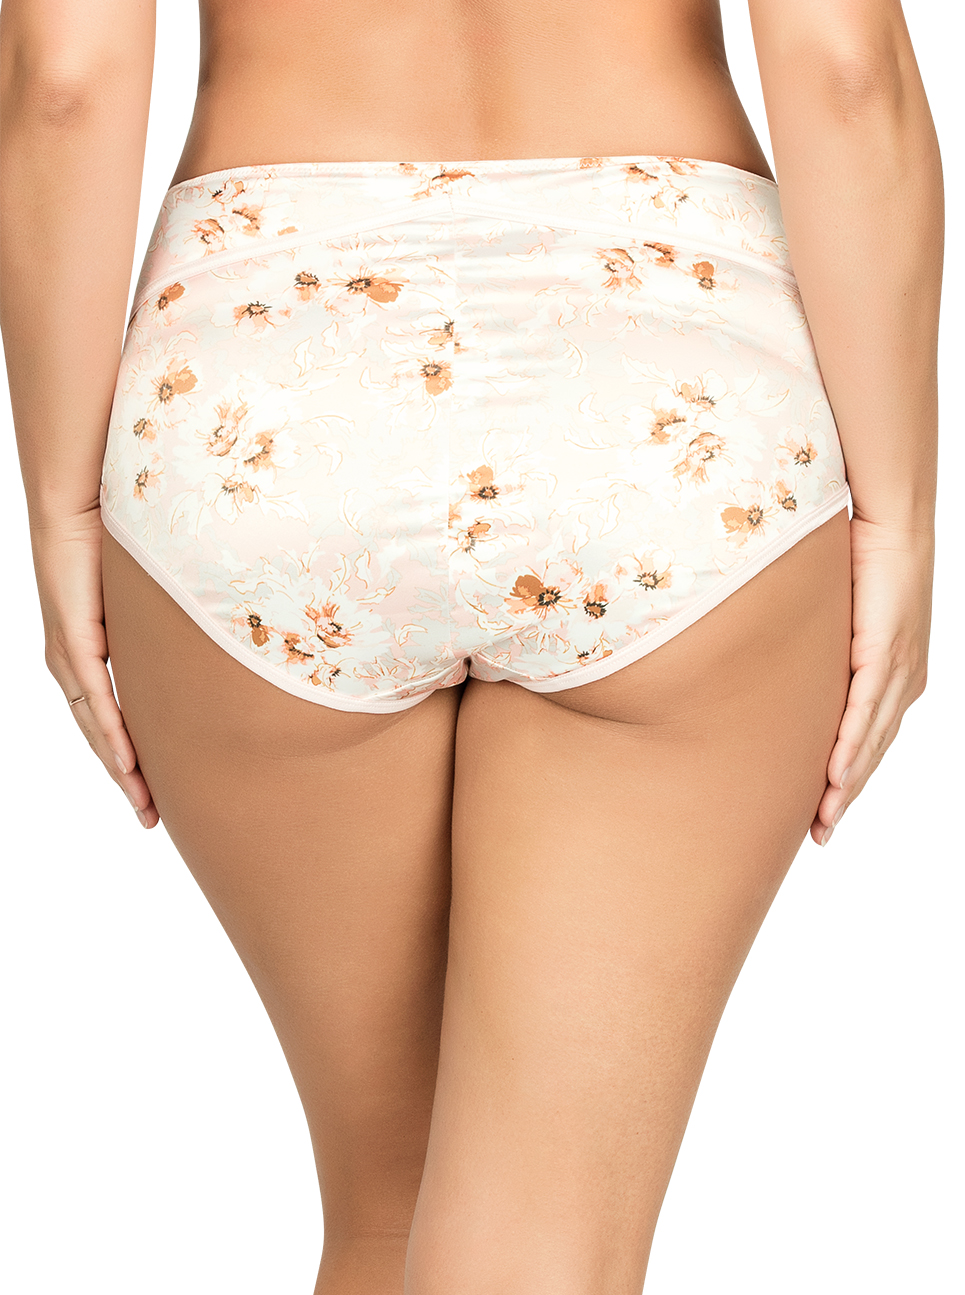 PARFAIT Charlotte HighwaistBrief6917 BlossomPrint Back - Charlotte Highwaist Brief - Blossom Print - 6917